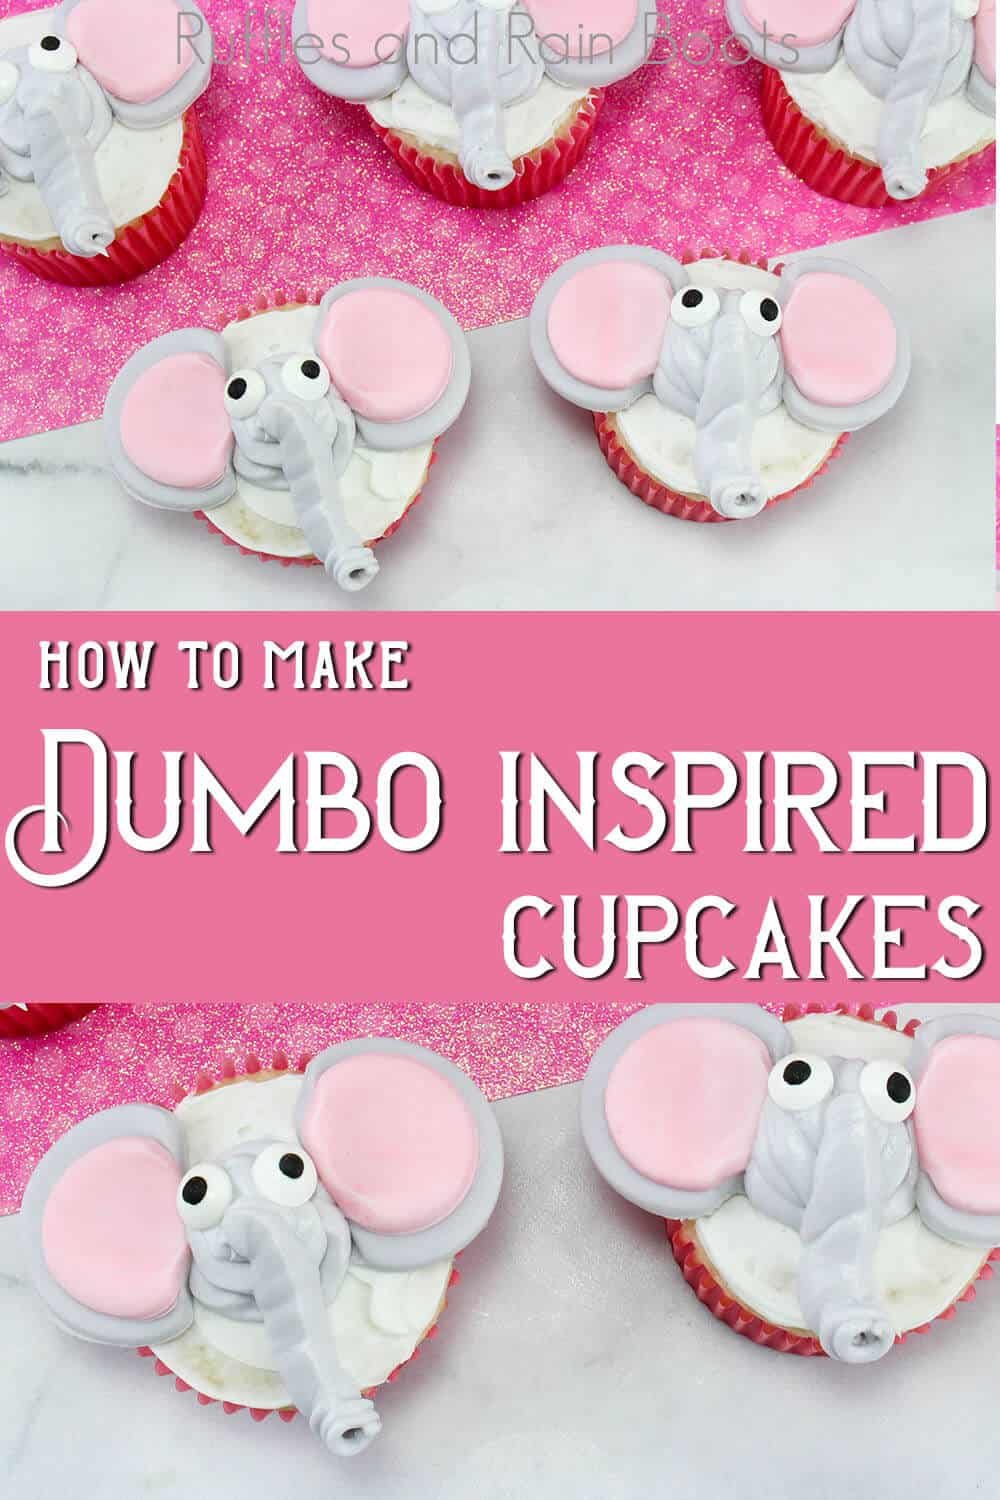 photo collage of dumbo inspired cupcakes with text which reads how to make dumbo inspired cupcakes